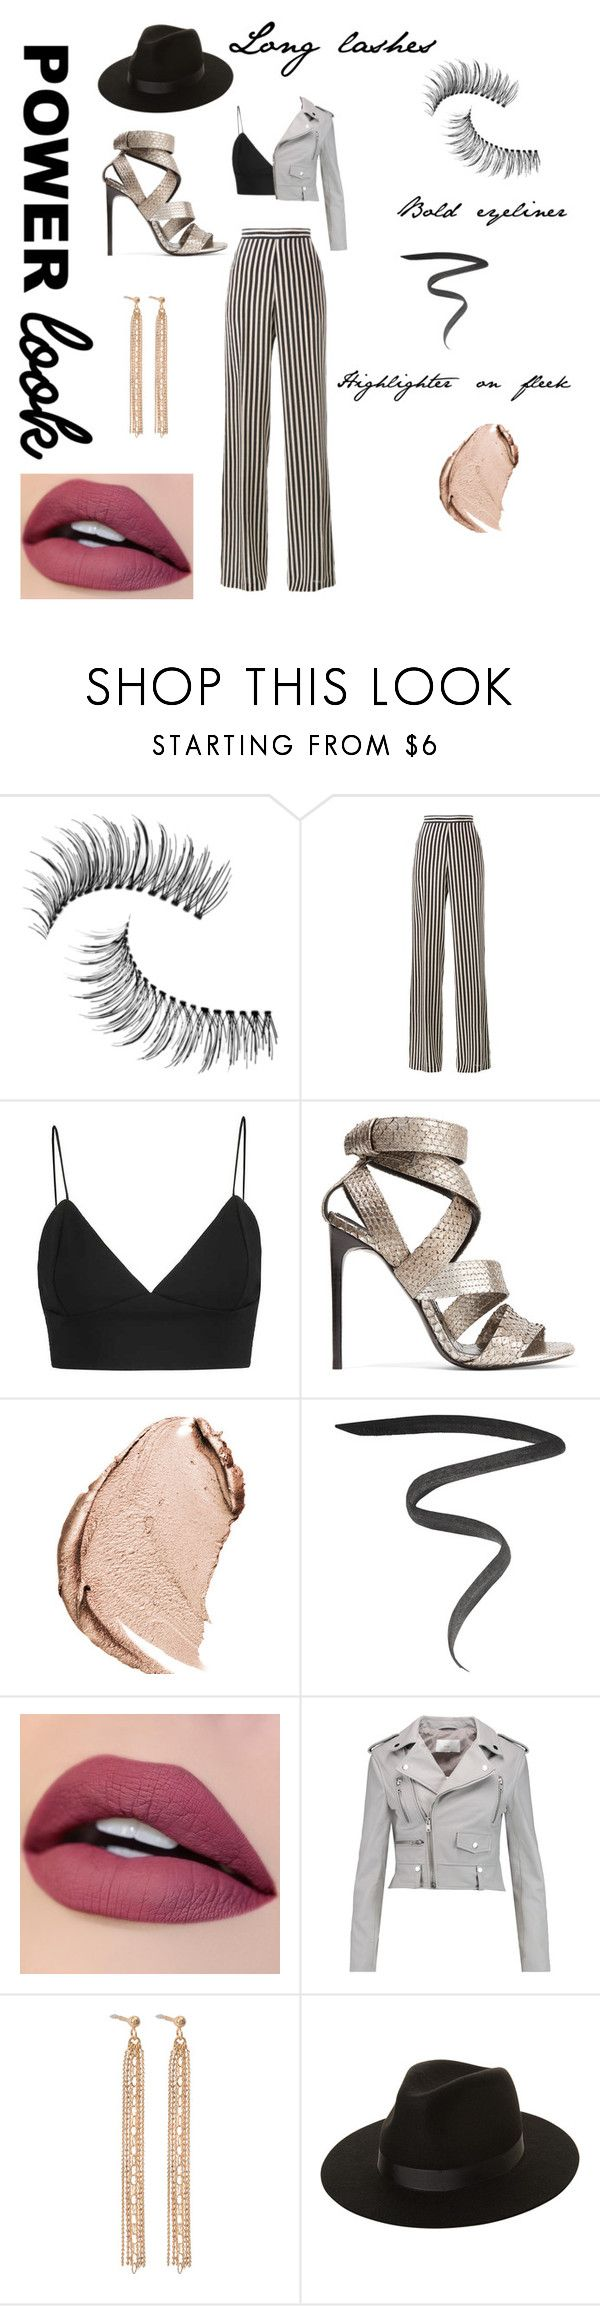 """""""My power look"""" by anamariahodinet on Polyvore featuring Trish McEvoy, Etro, Tom Ford, Christian Dior, Marc Jacobs, W118 by Walter Baker, Ginette NY and Lack of Color"""